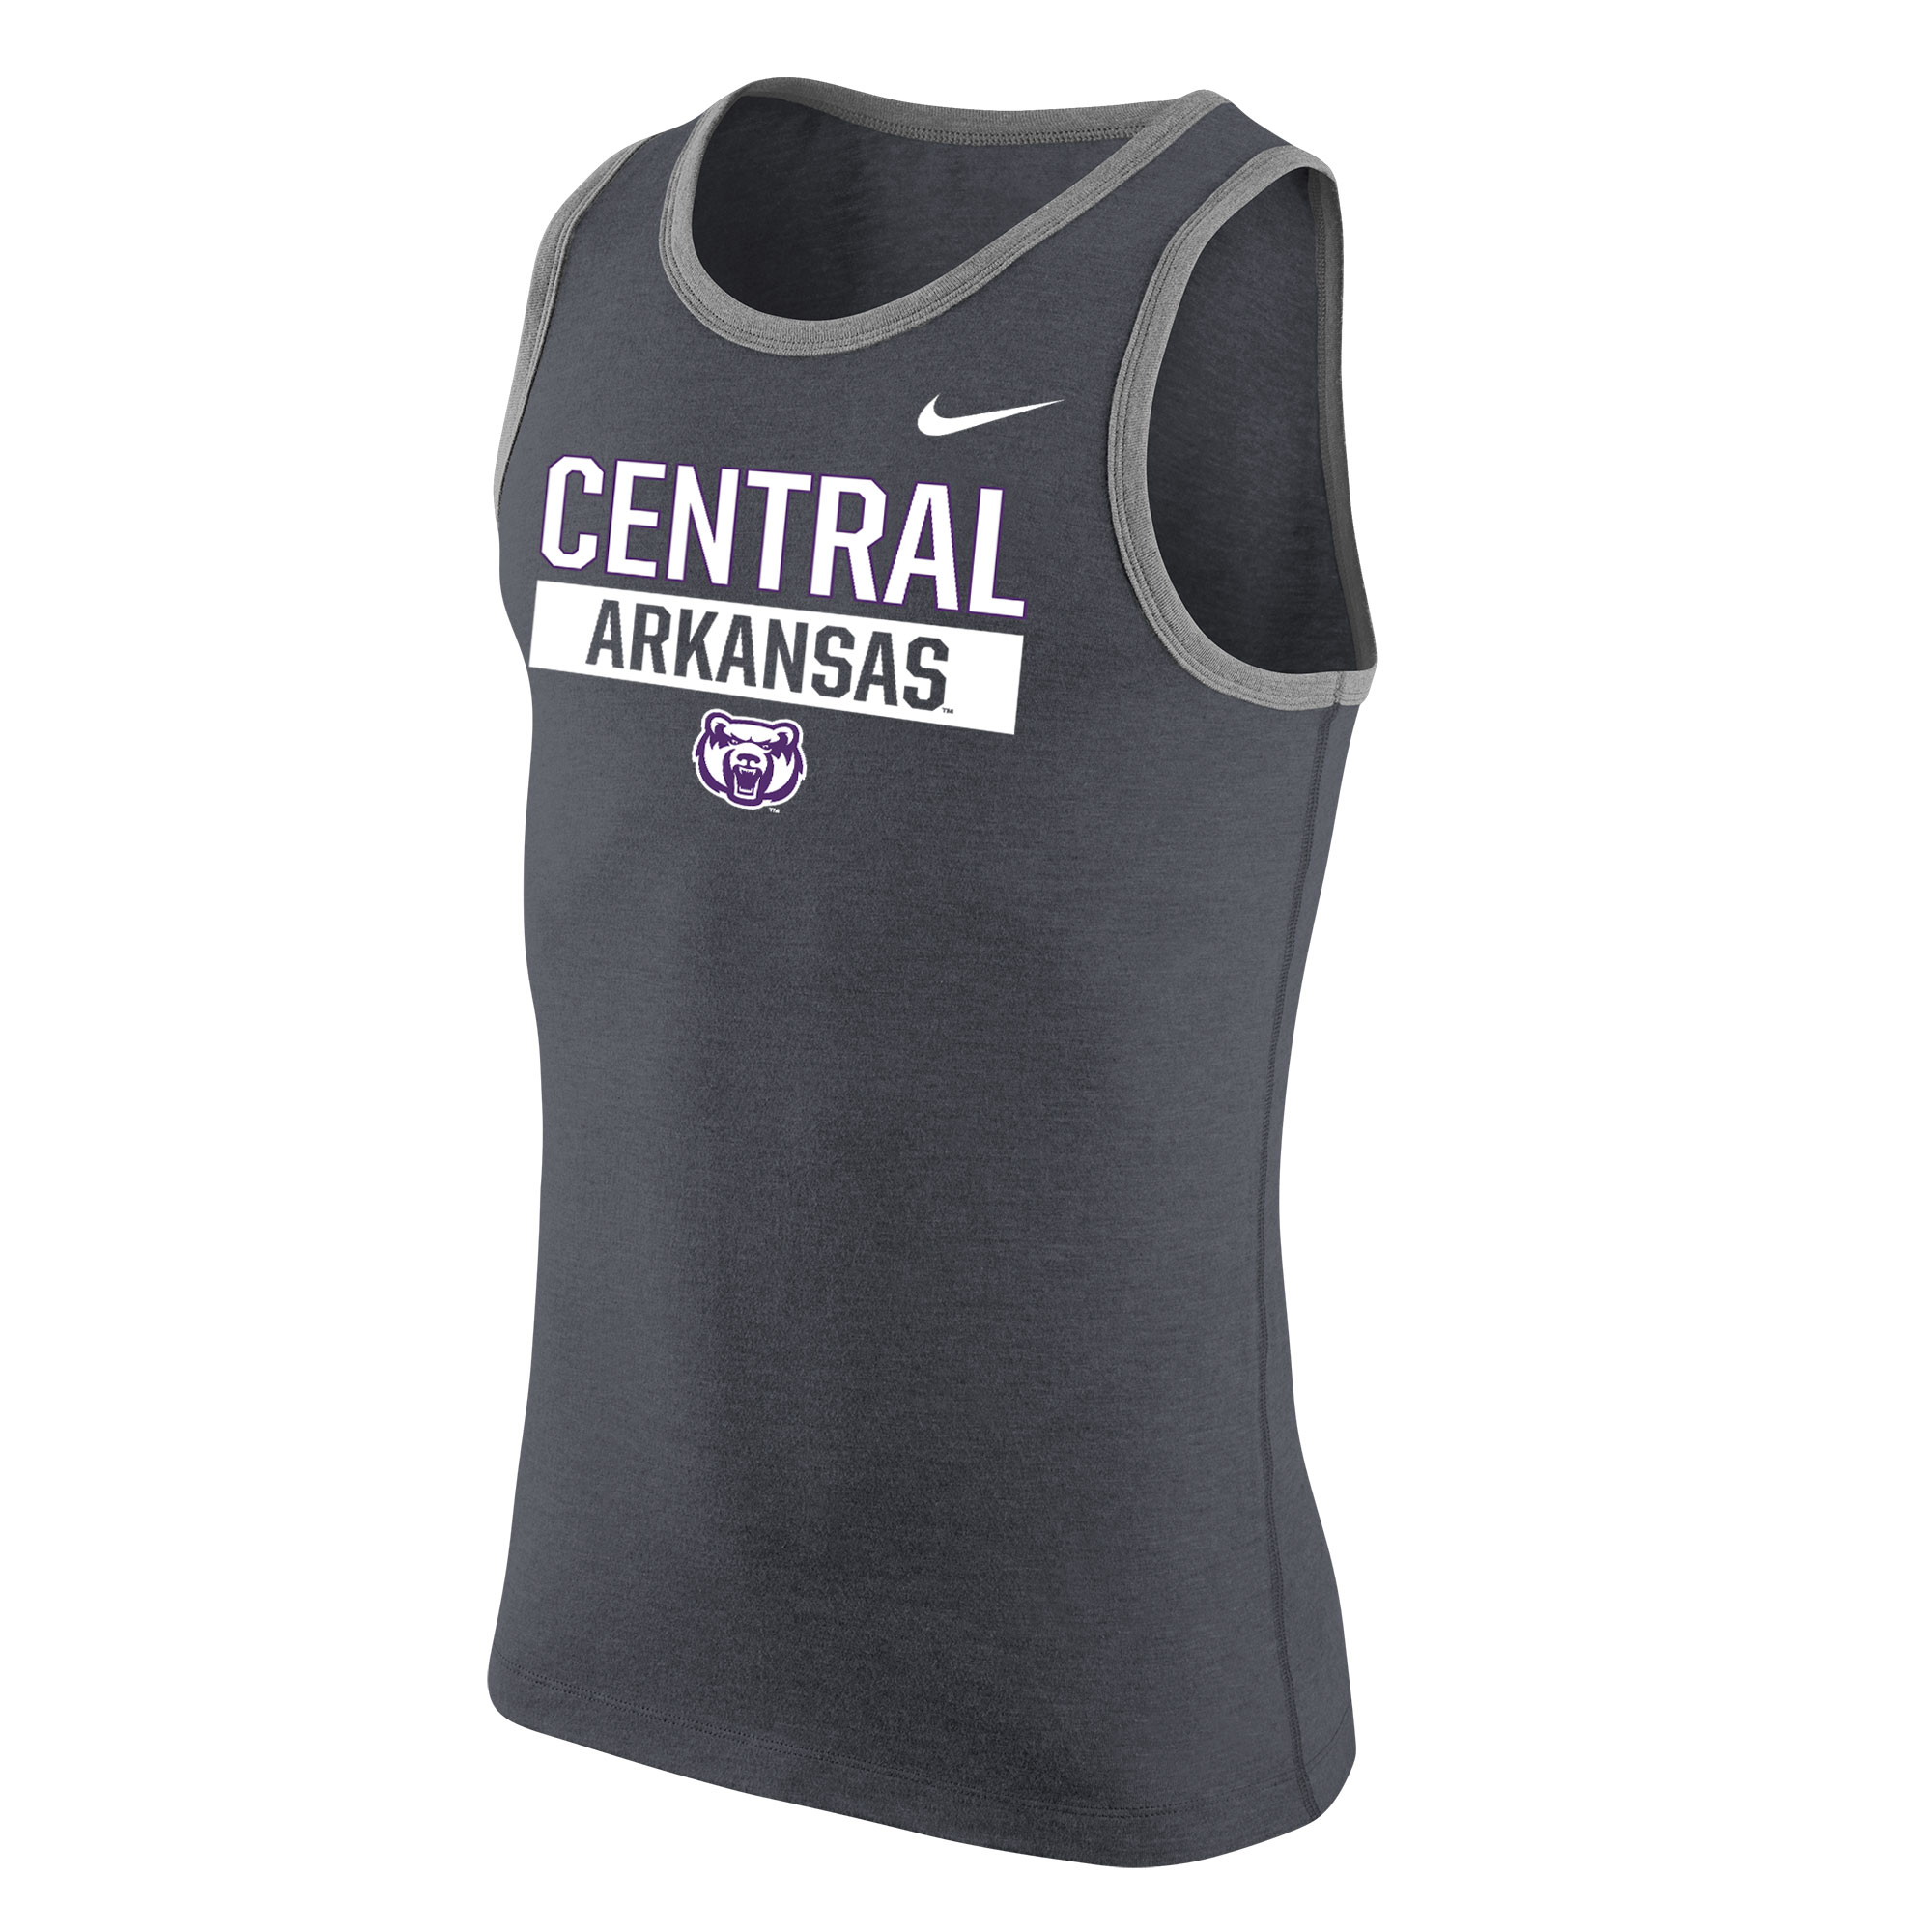 Central Arkansas Core Tank